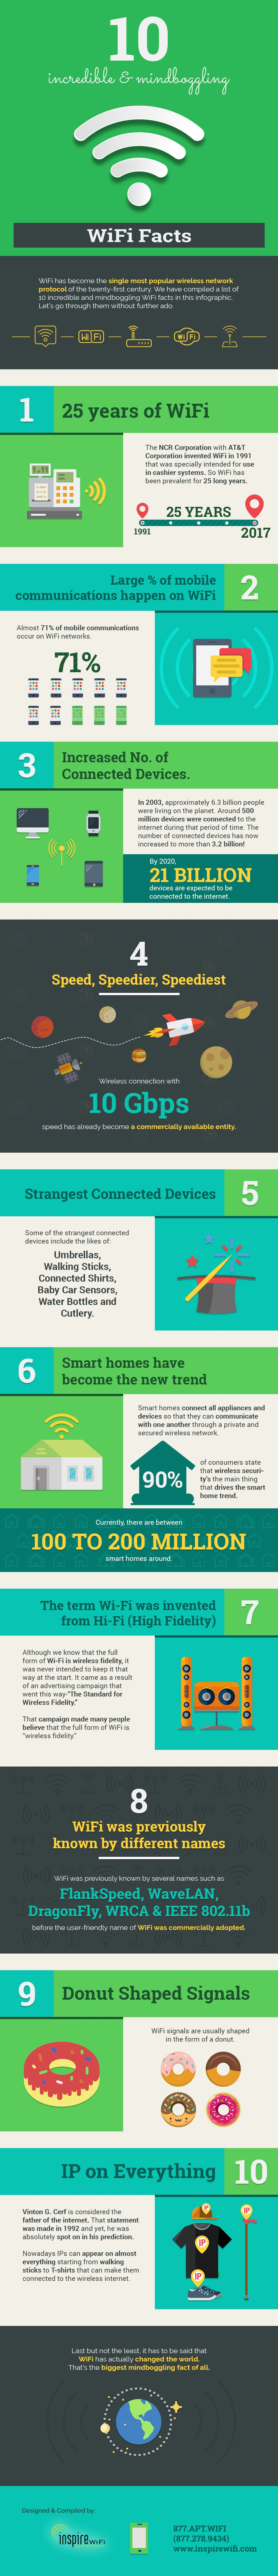 10 Incredible & Mind boggling WiFi Facts - #infographic